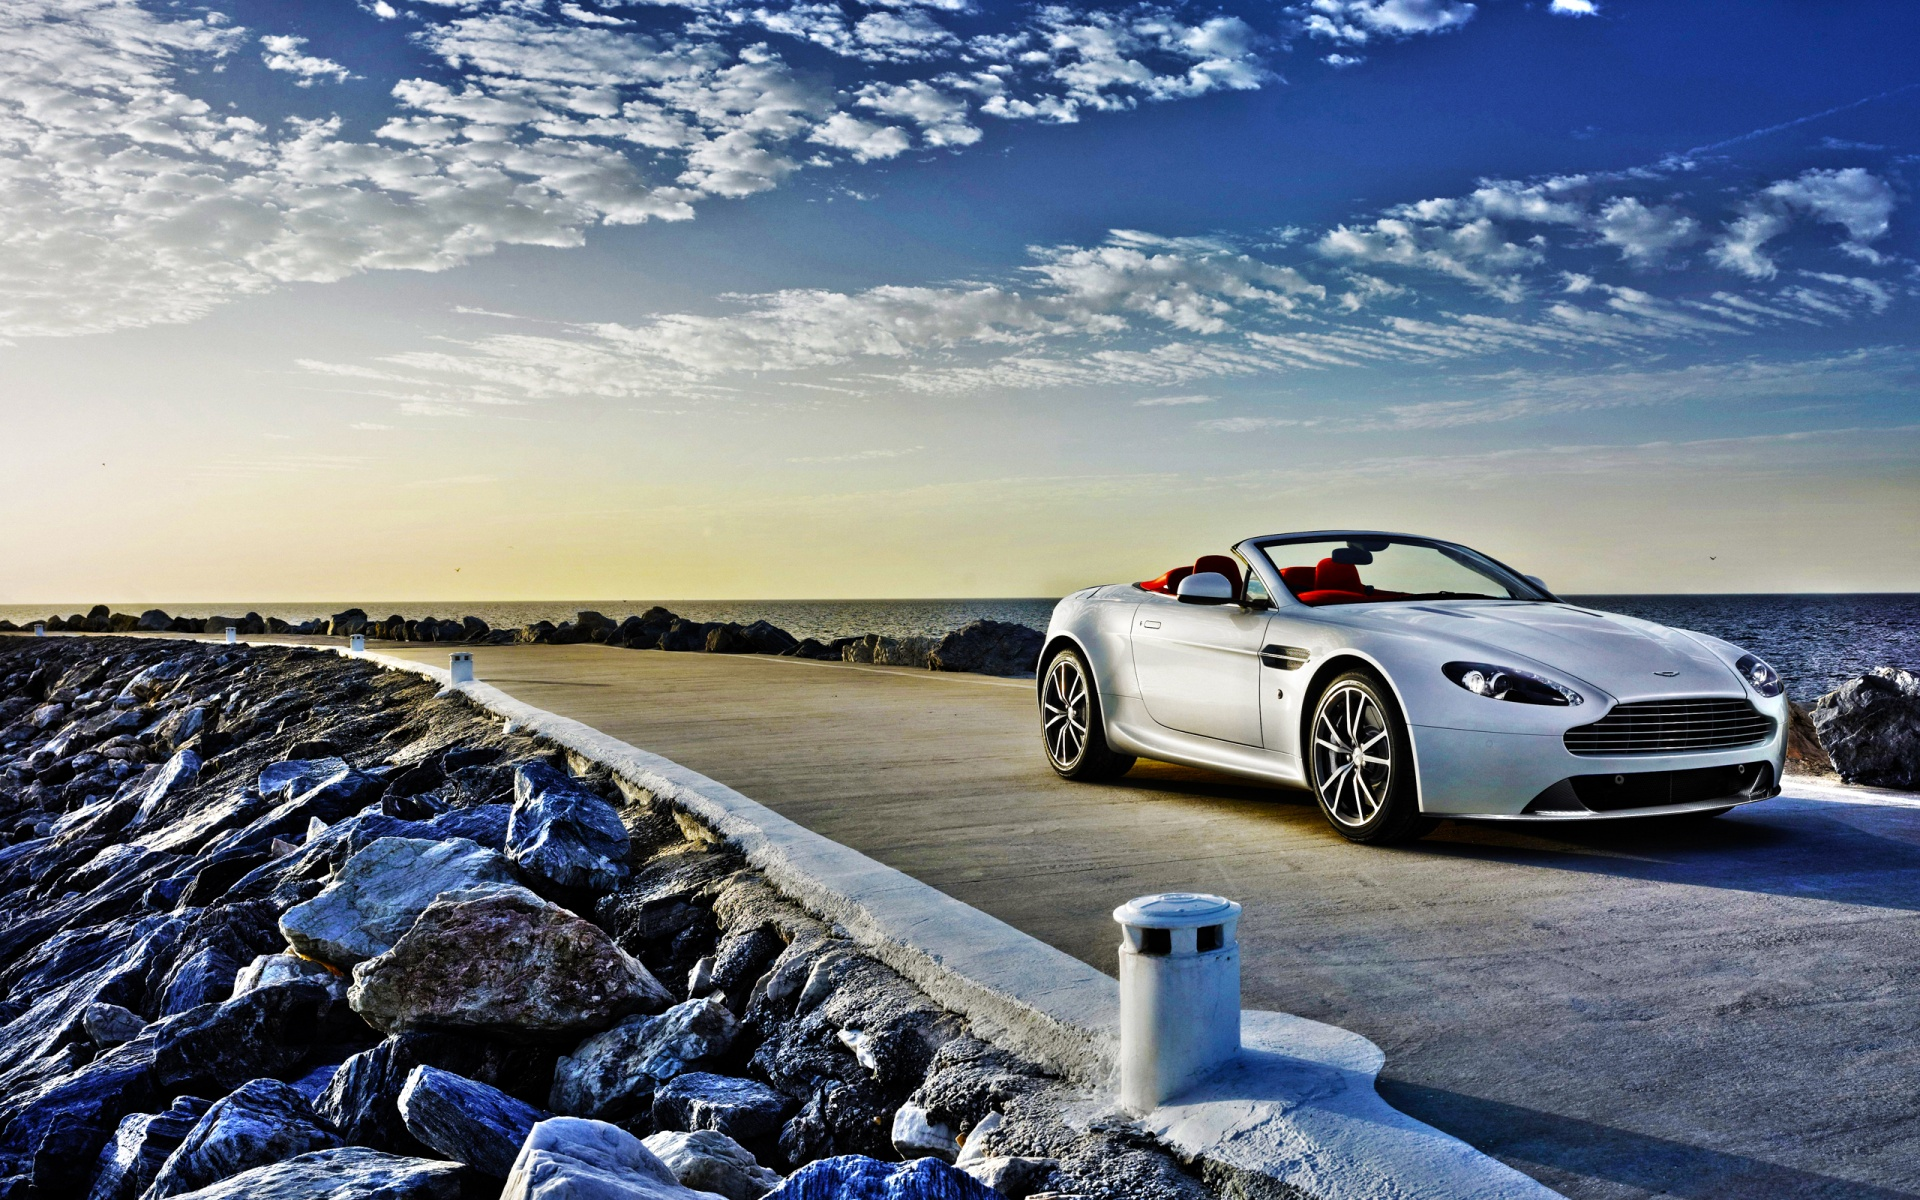 Aston Martin V8 Vantage Wallpapers, Pictures, Images